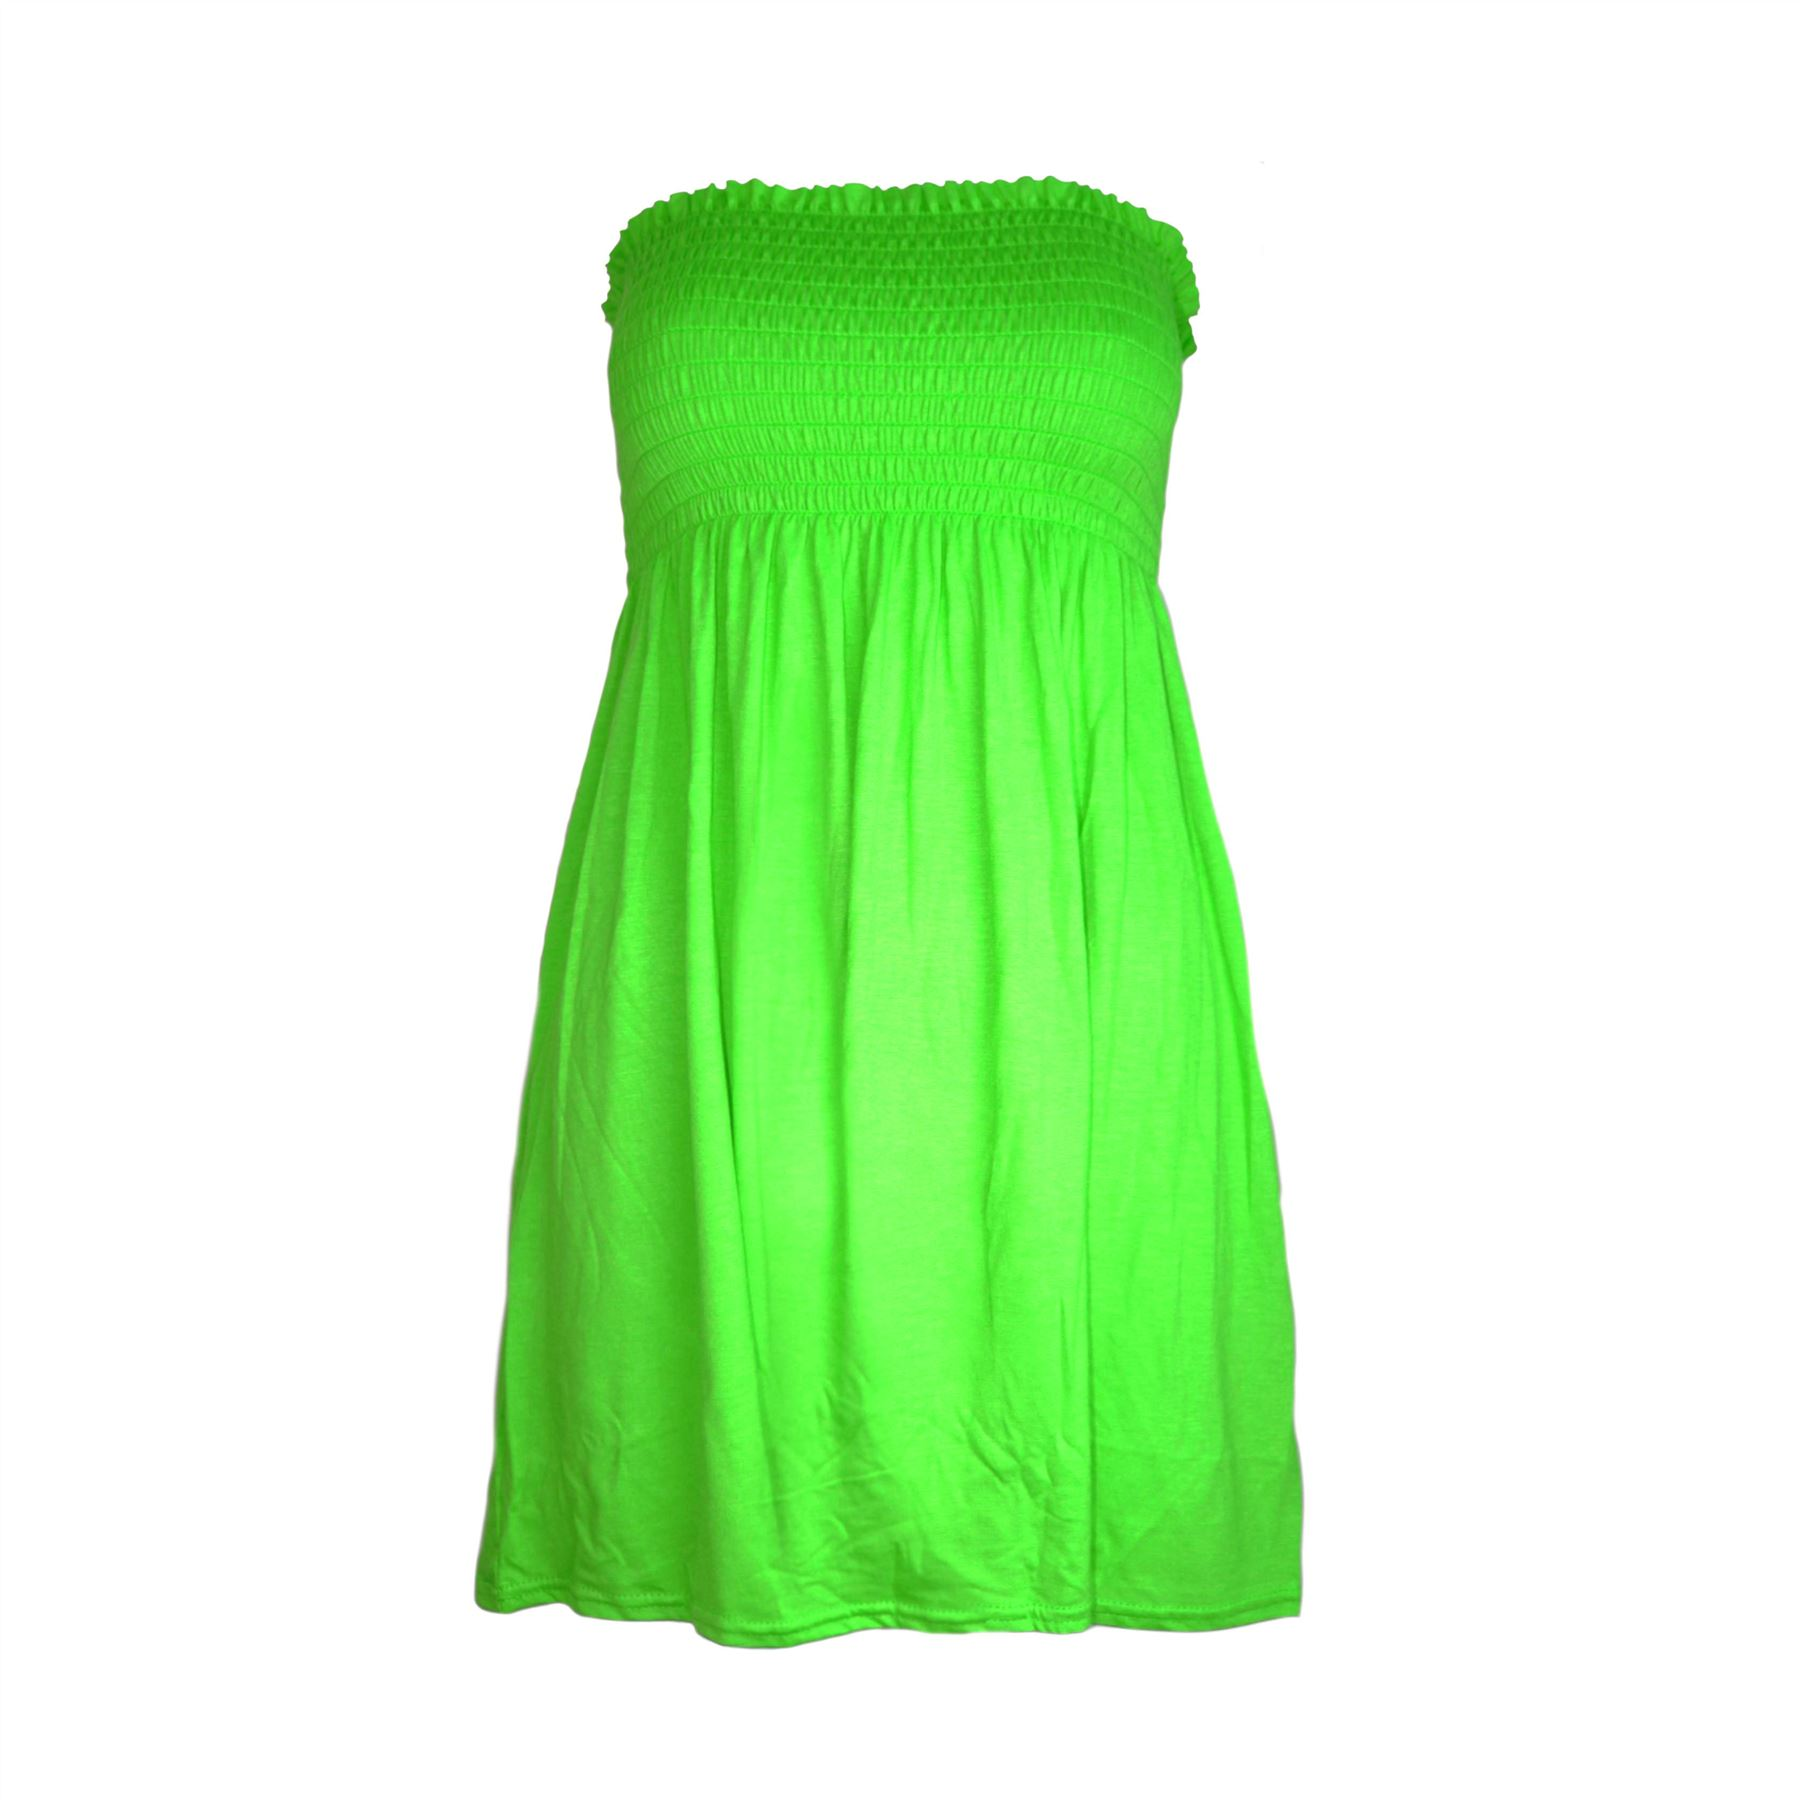 Green Tube Top Dress